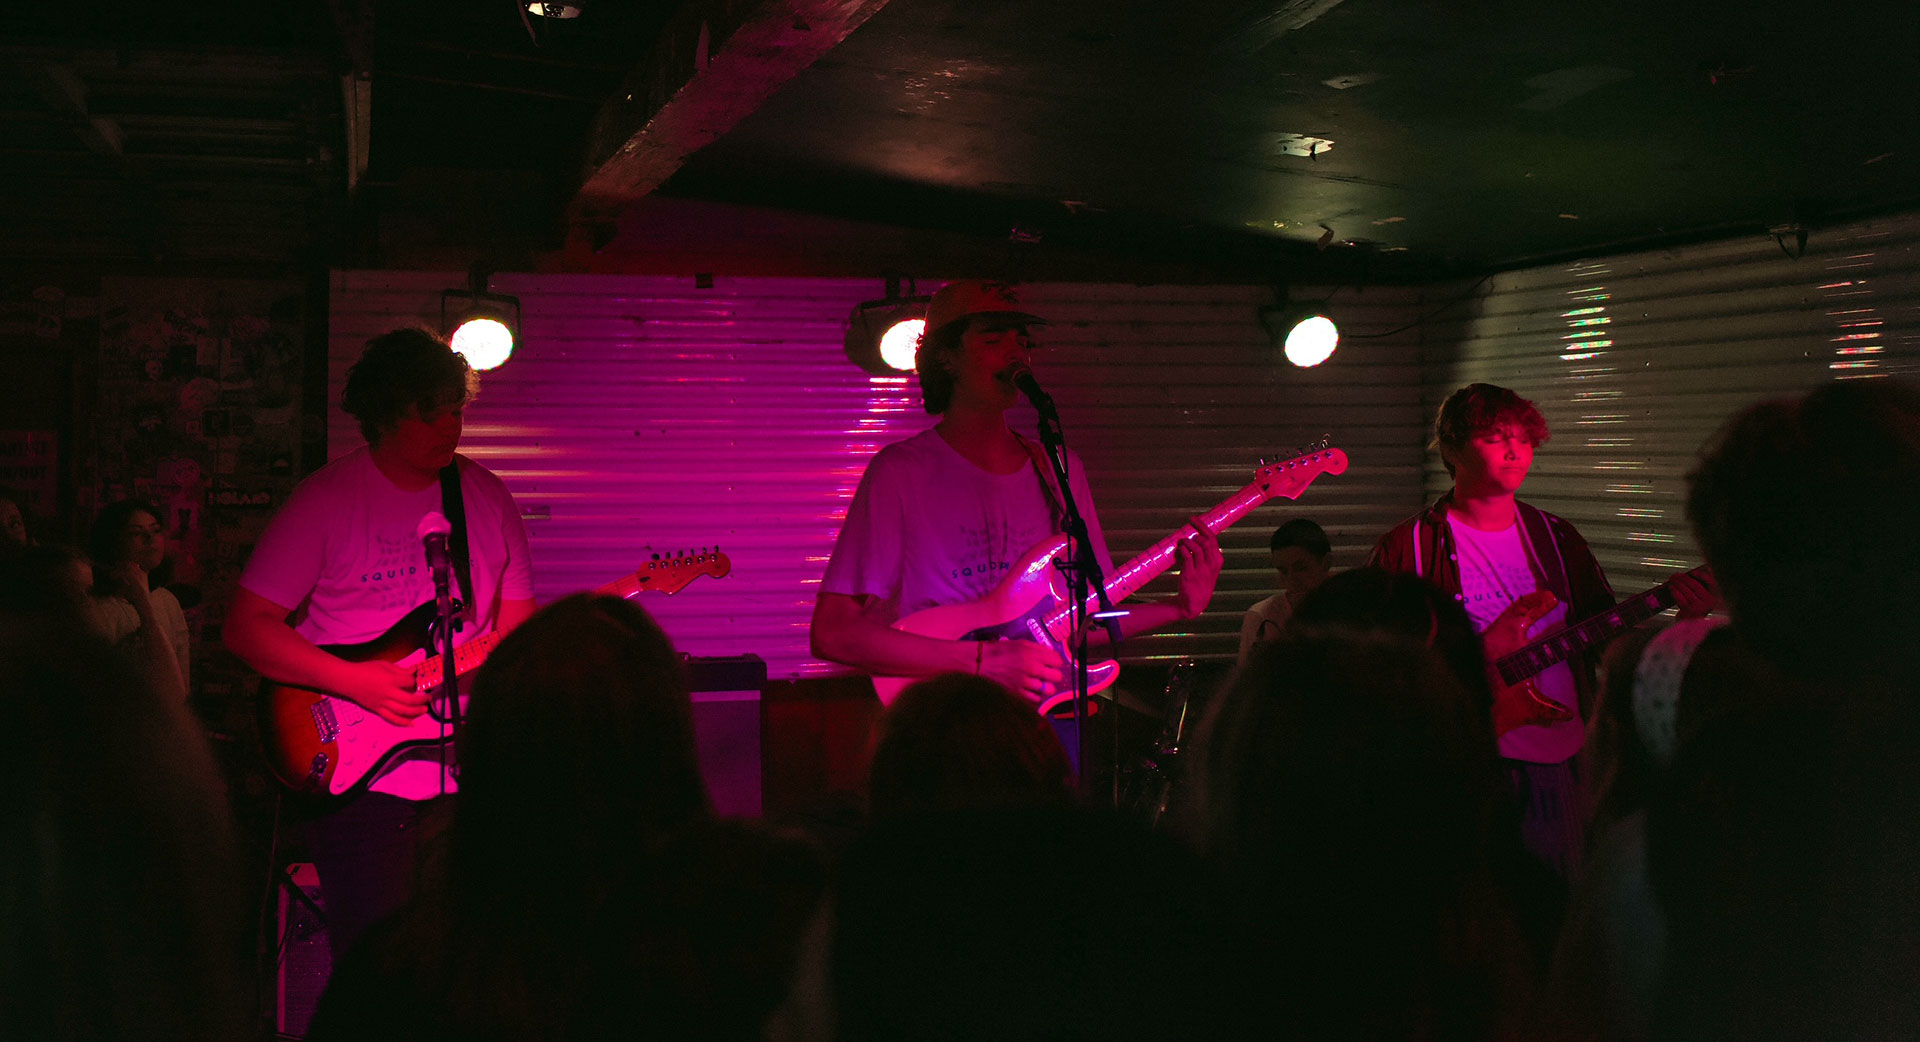 Three band members play guitar in front of live audience